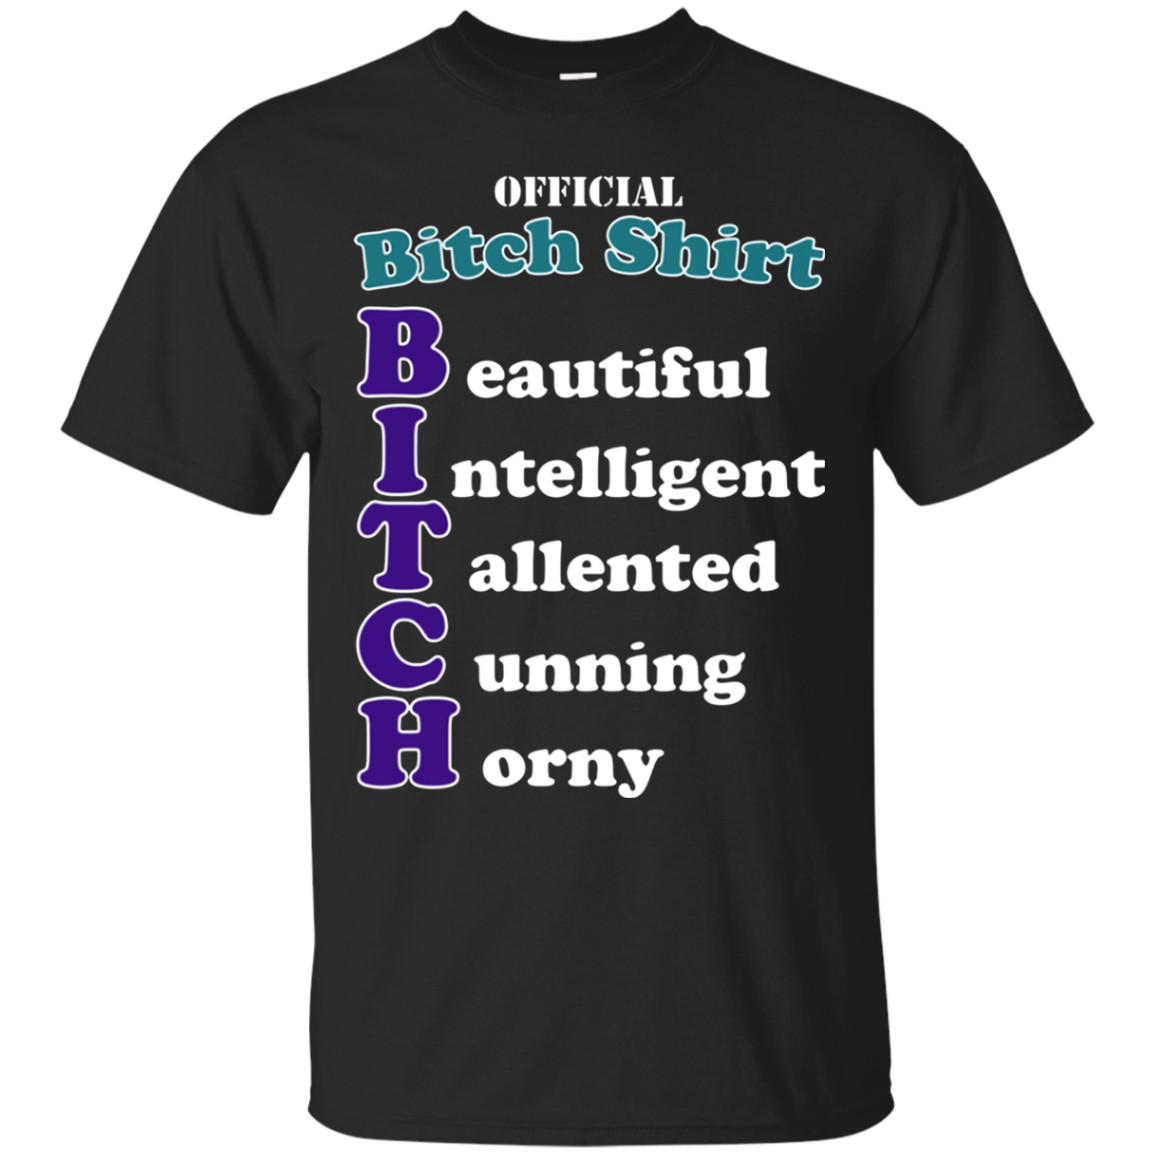 High Quality Bitch Beautiful Intelligent Talented Cunning Horny Shirts